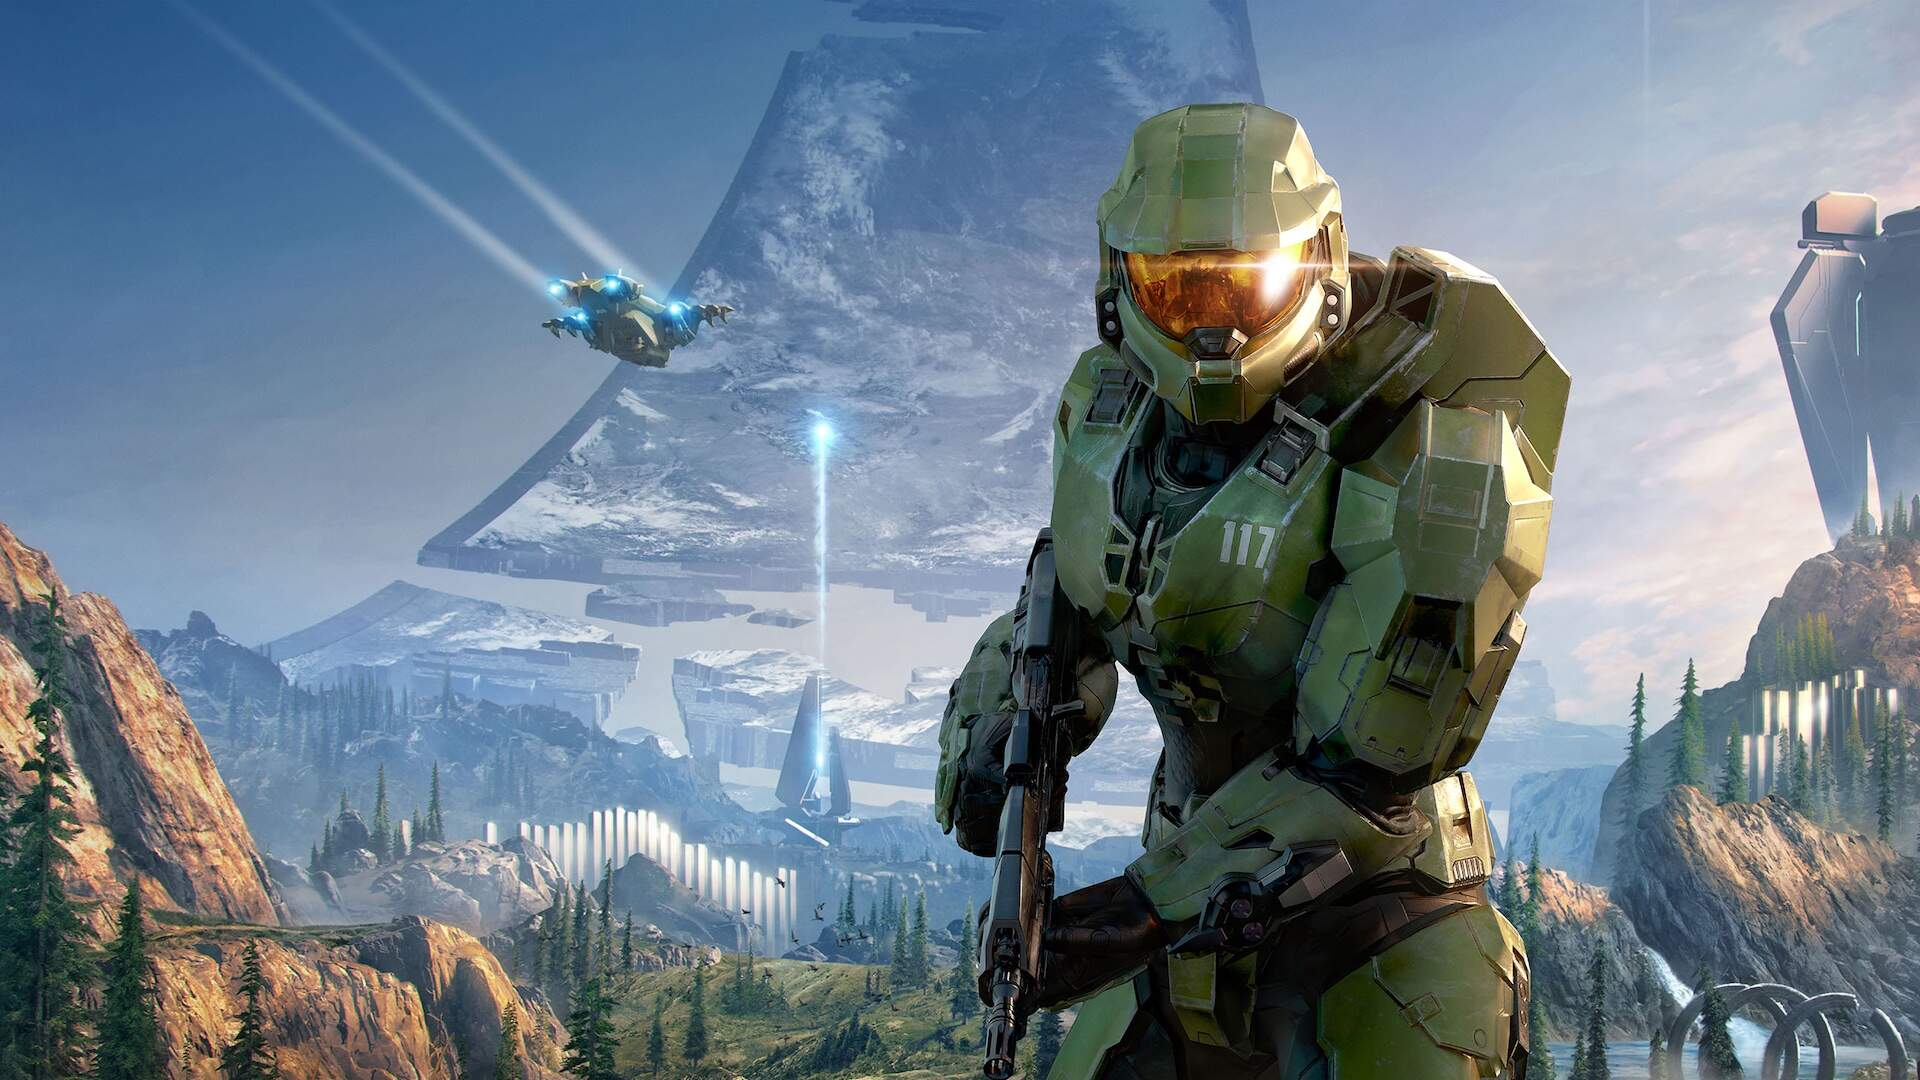 Halo Infinite Gives First Official Look at Weapon and Player Cosmetics